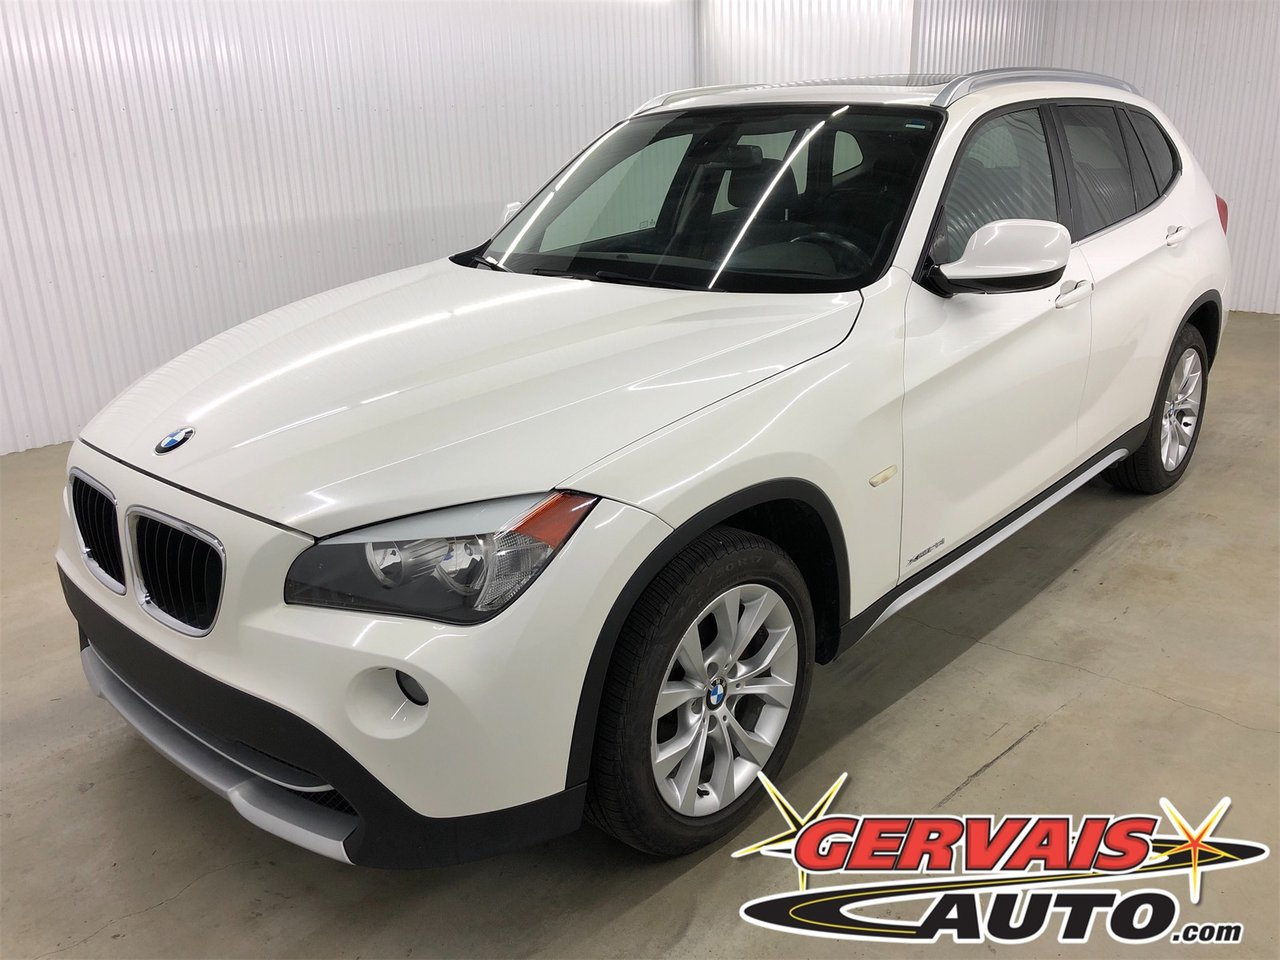 BMW X1 2012 28i Xdrive AWD Cuir Toit panoramique MAGS